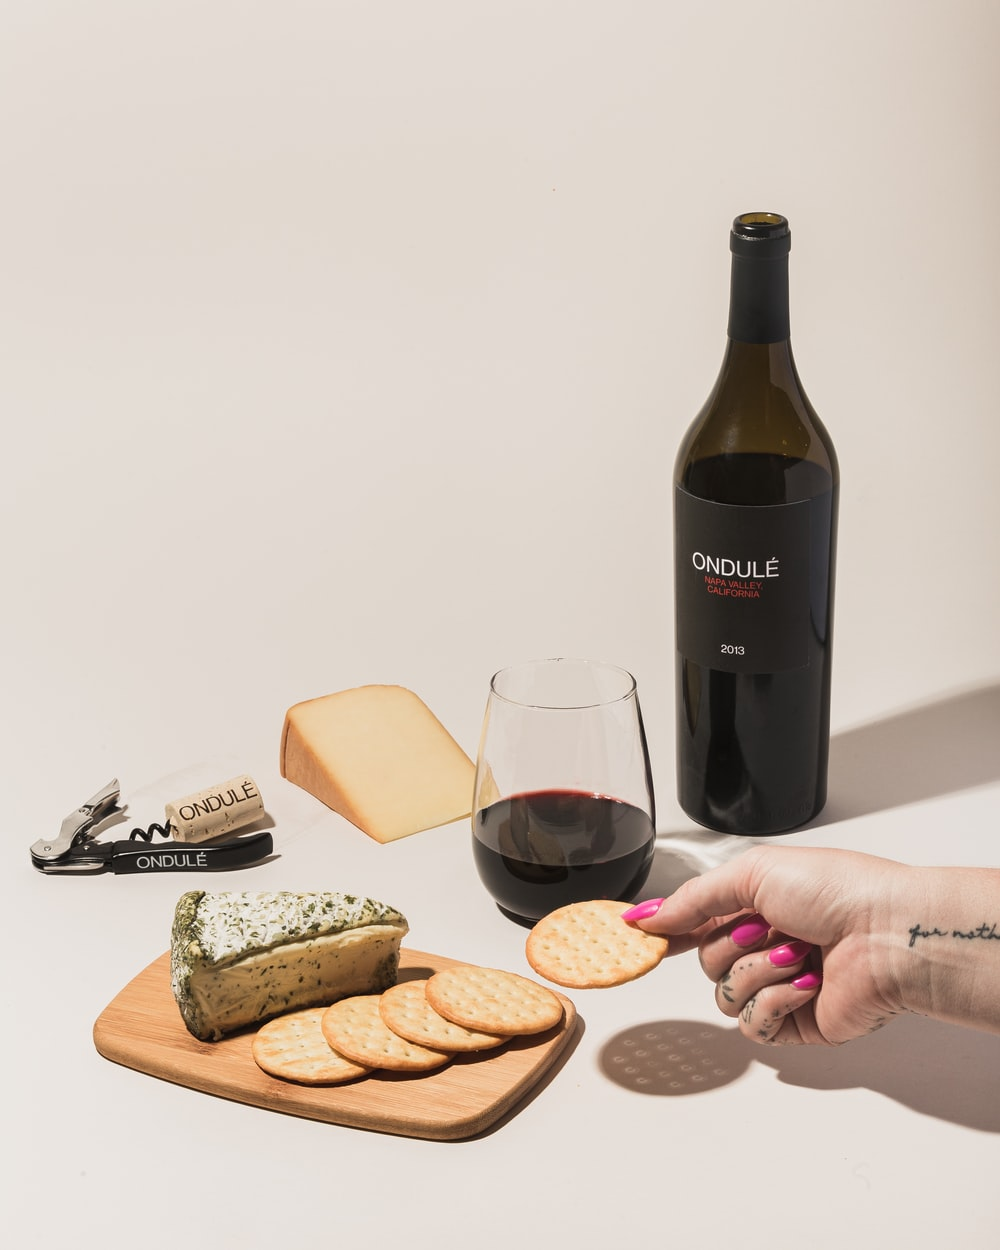 person holding wine bottle pouring on bread and bread